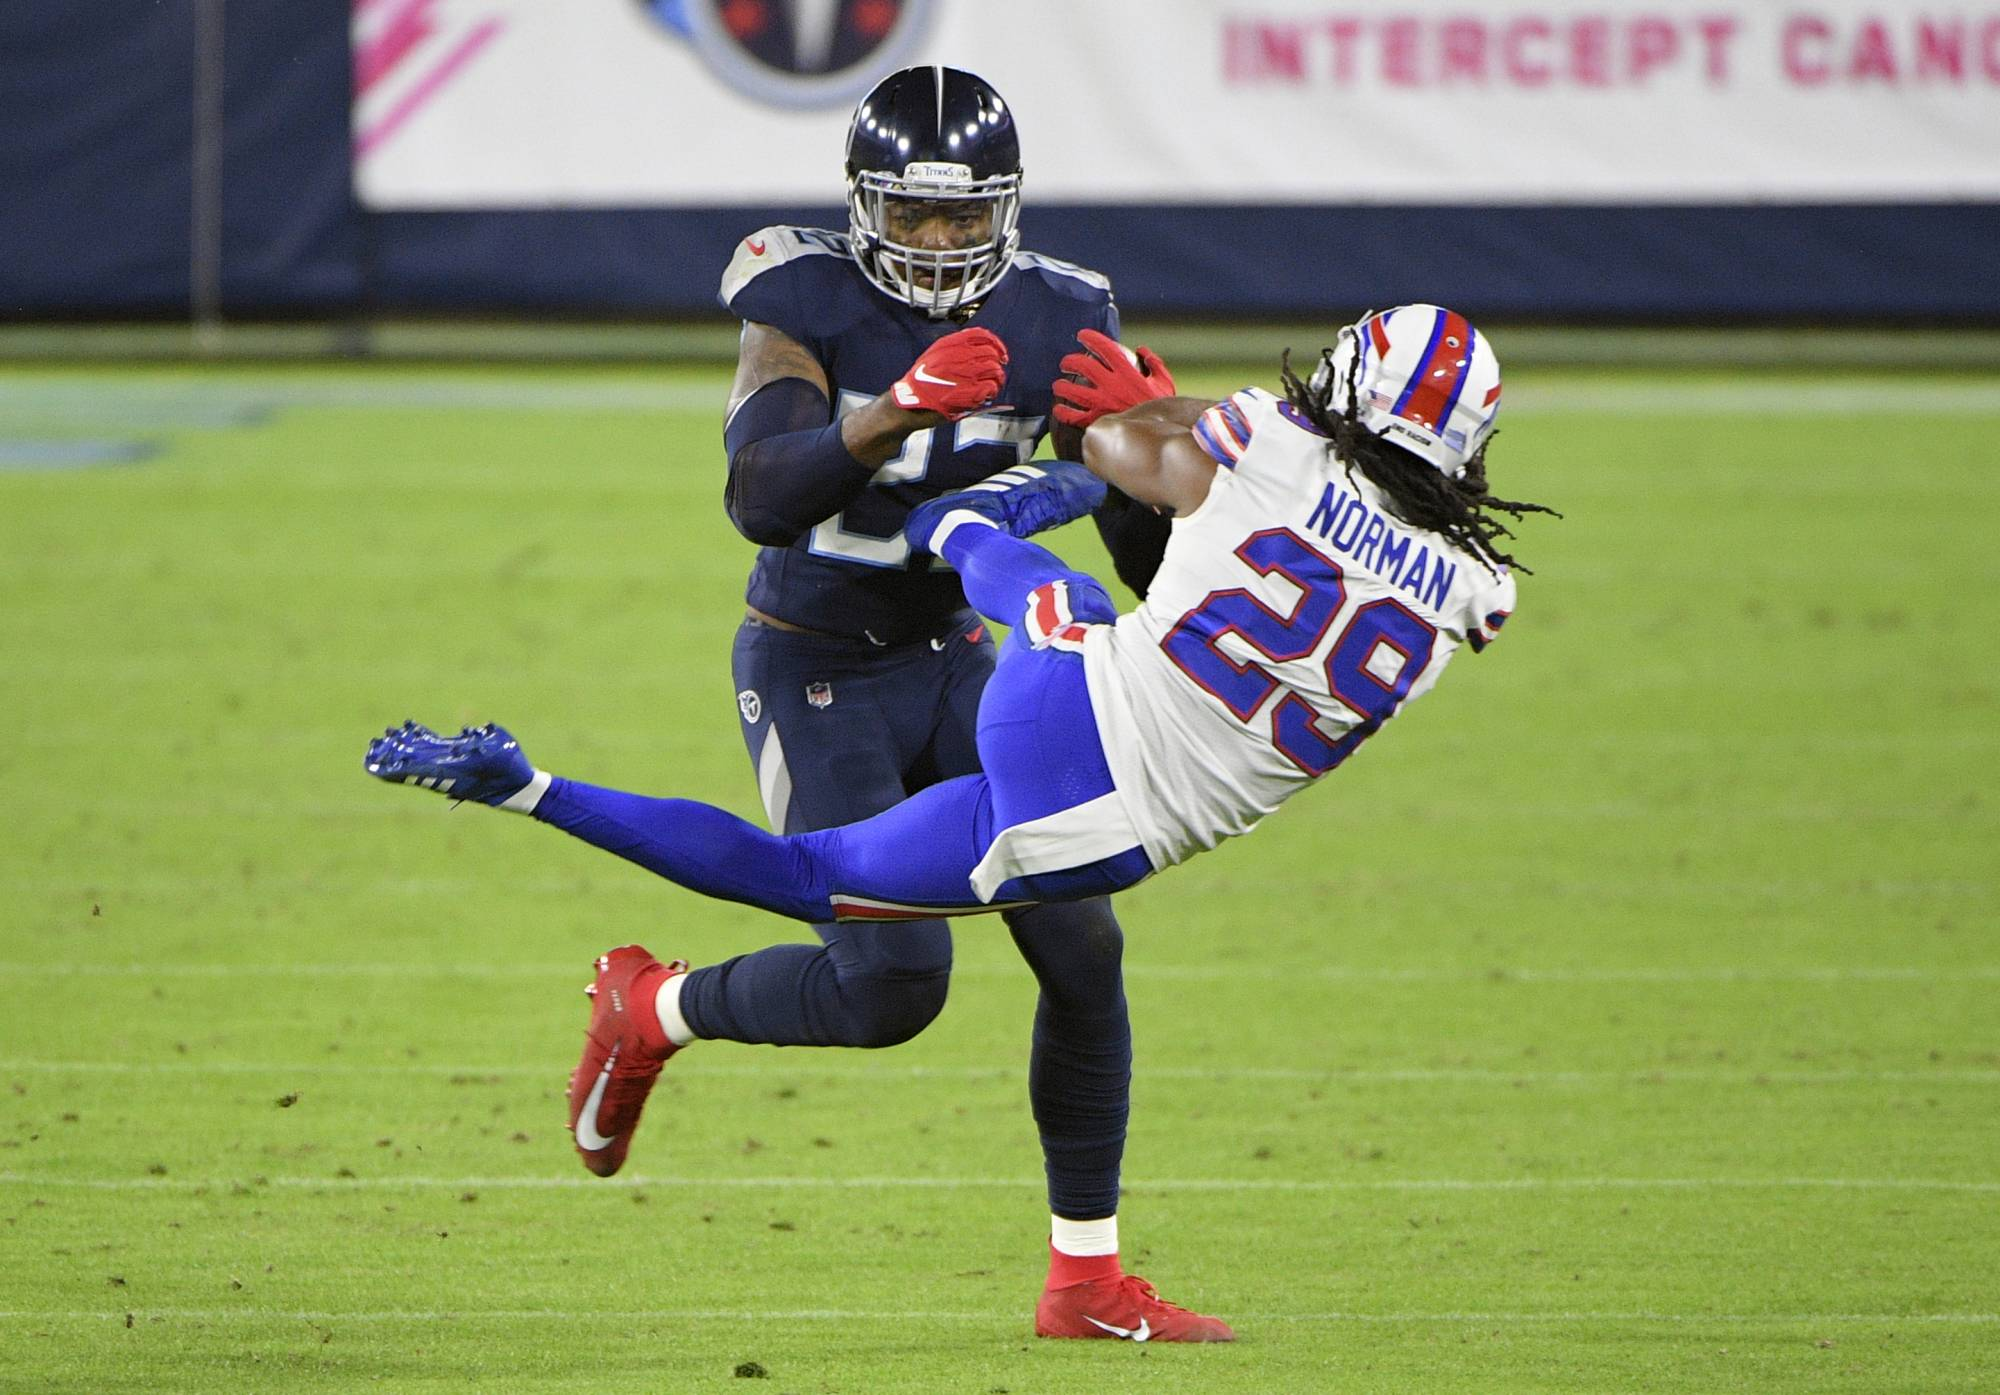 Titans running back Derrick Henry tosses aside Bills cornerback Josh Norman during their game in Nashville, Tennessee, on Oct. 13, 2020. | USA TODAY / VIA REUTERS